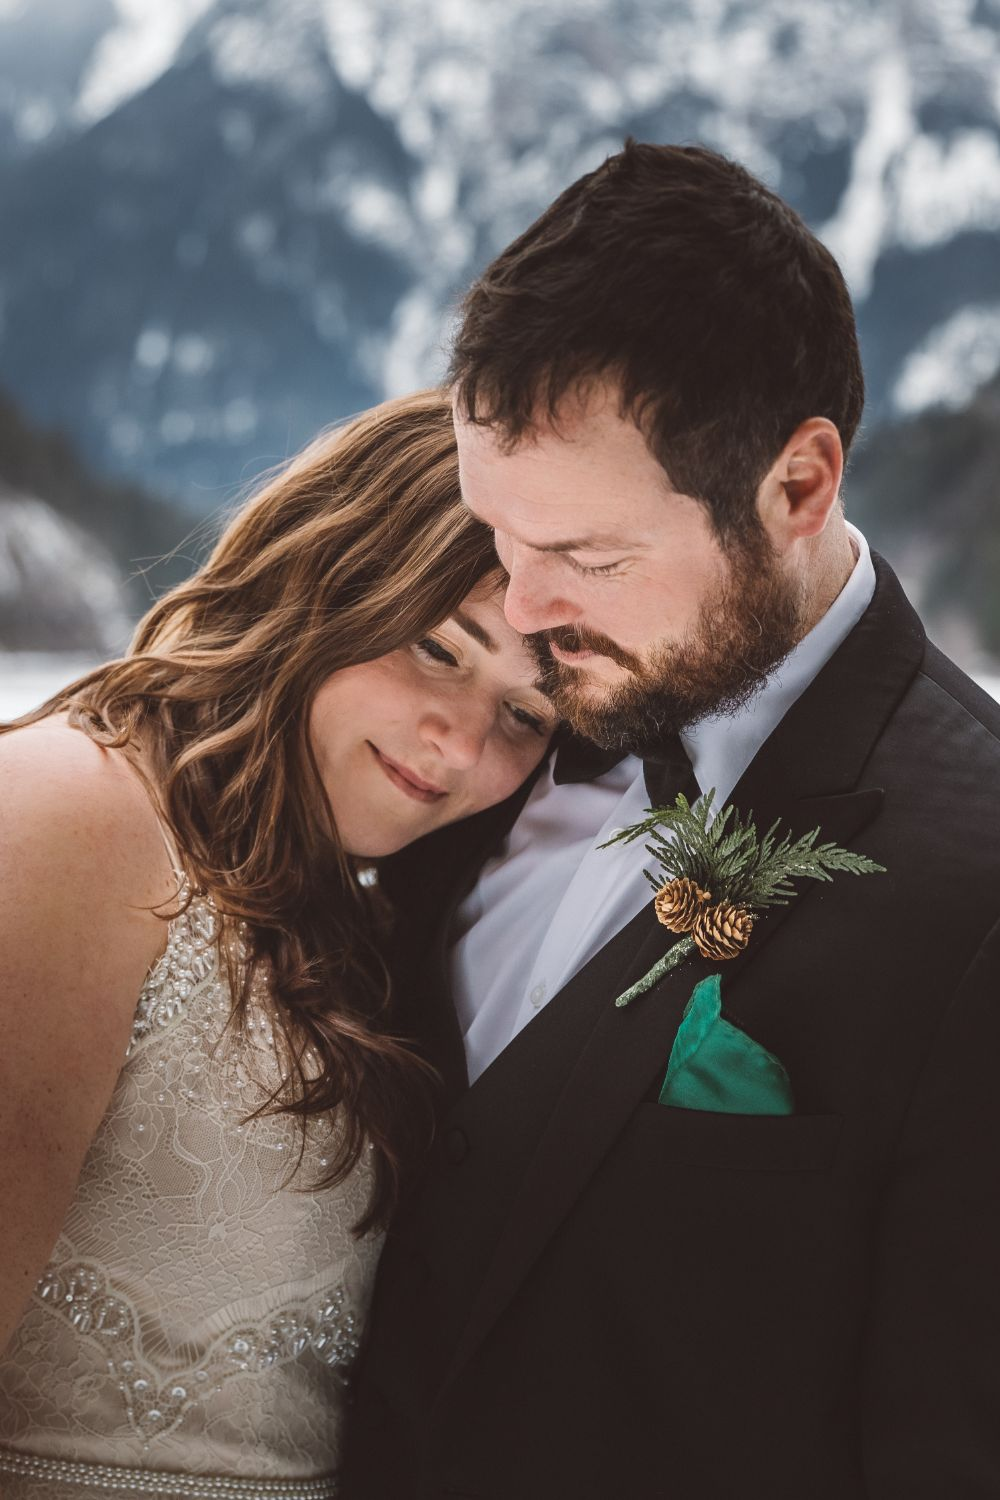 bride-snuggling-groom-snowy-mountains